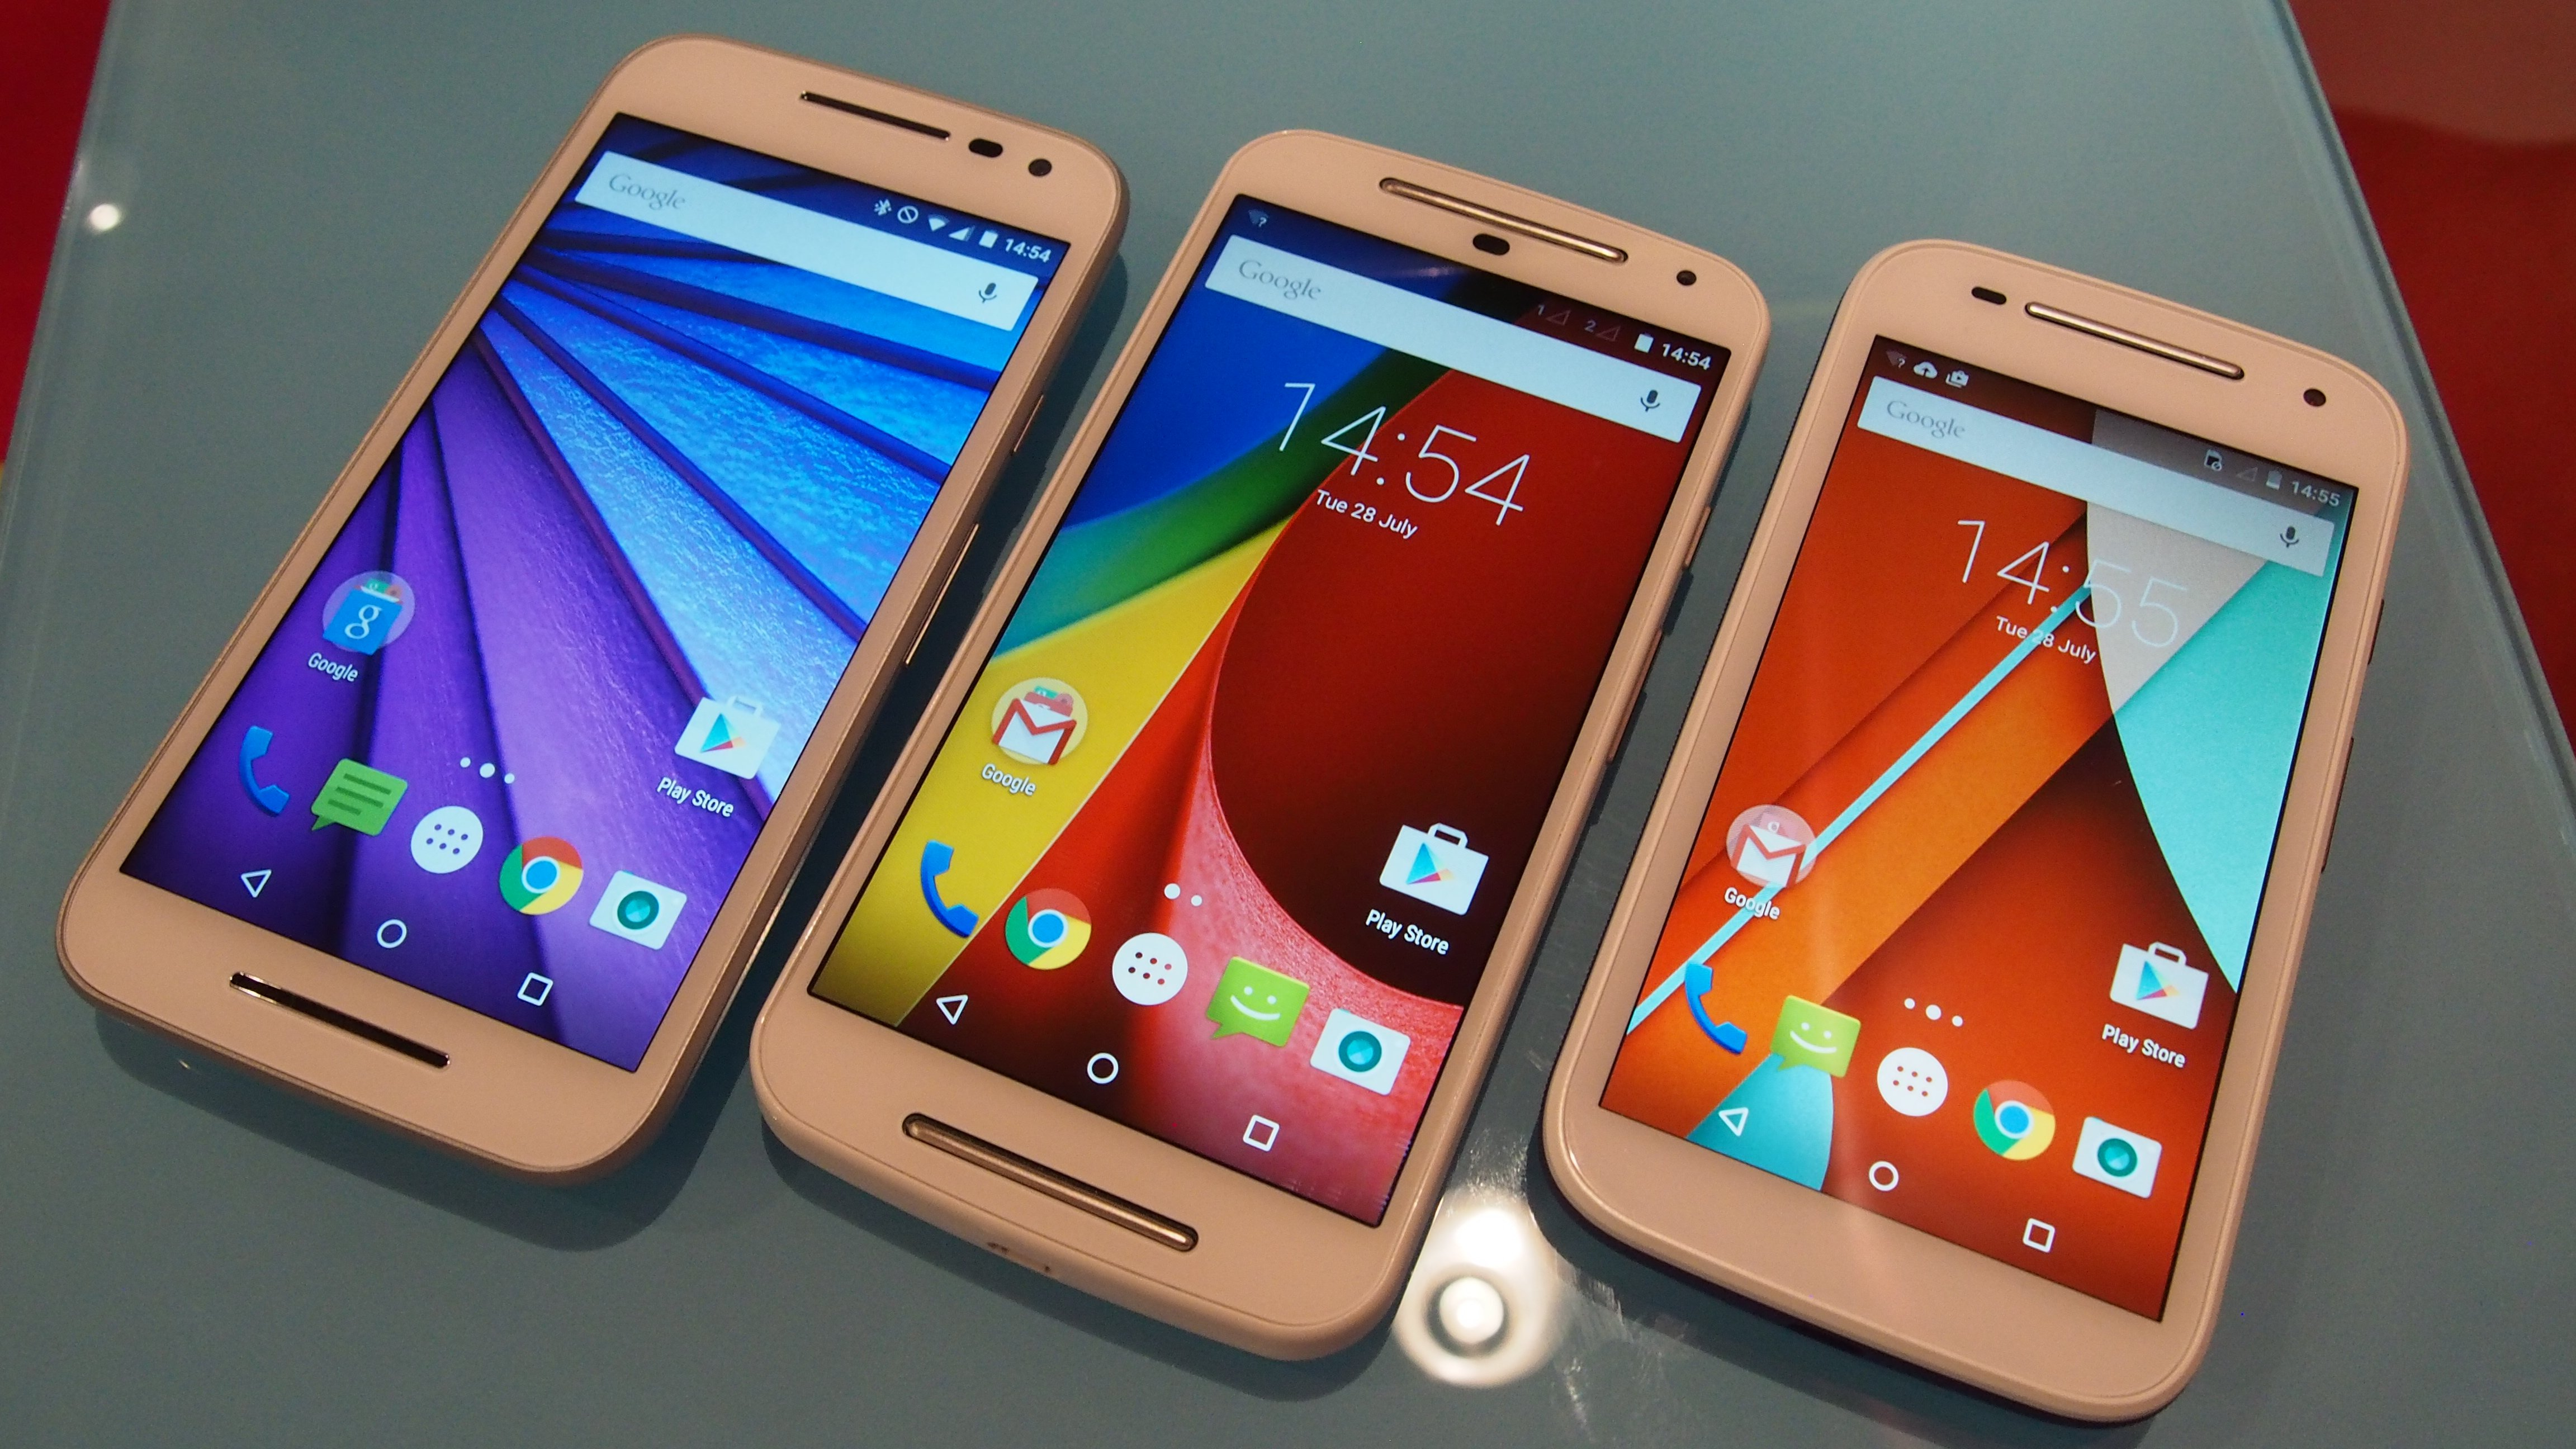 cdd52b7c421 Moto G 3rd Gen review (2015): The best compact budget smartphone now ...